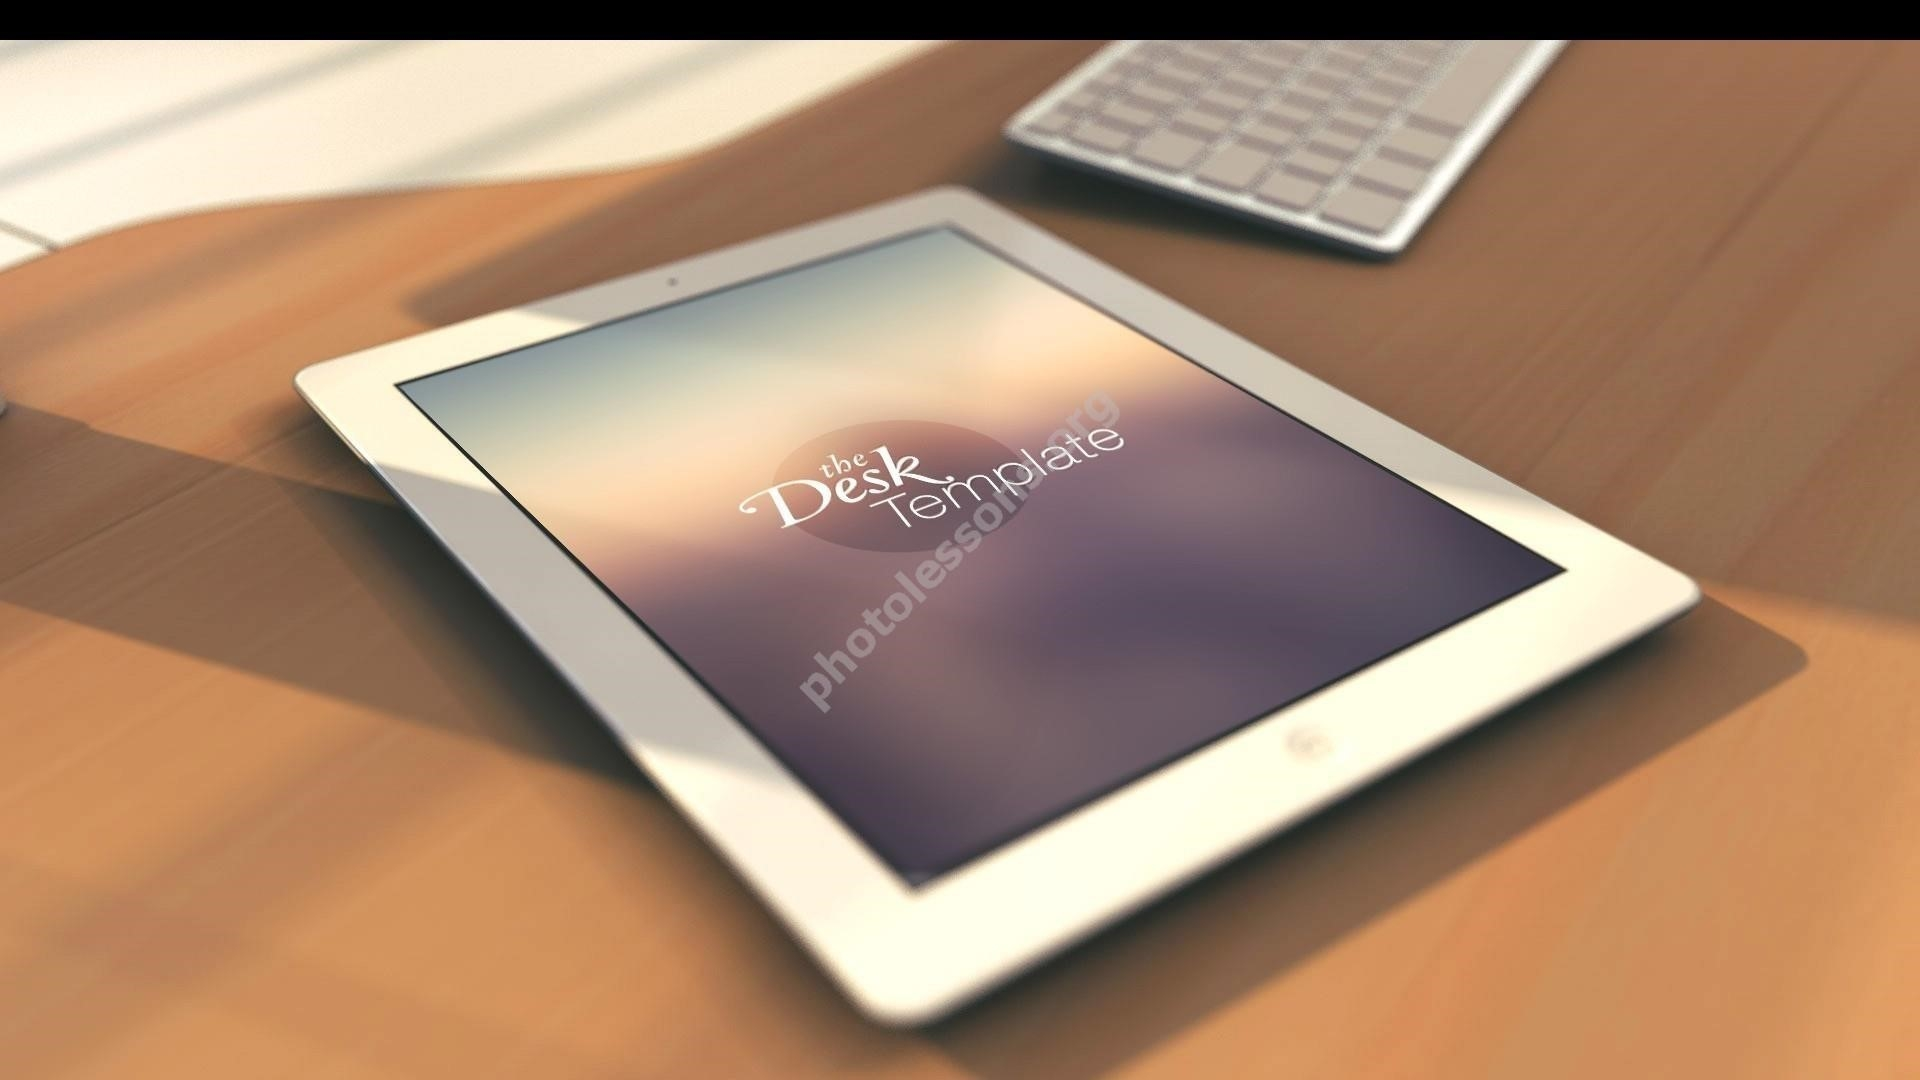 iPad format .PSD free download for Photoshop